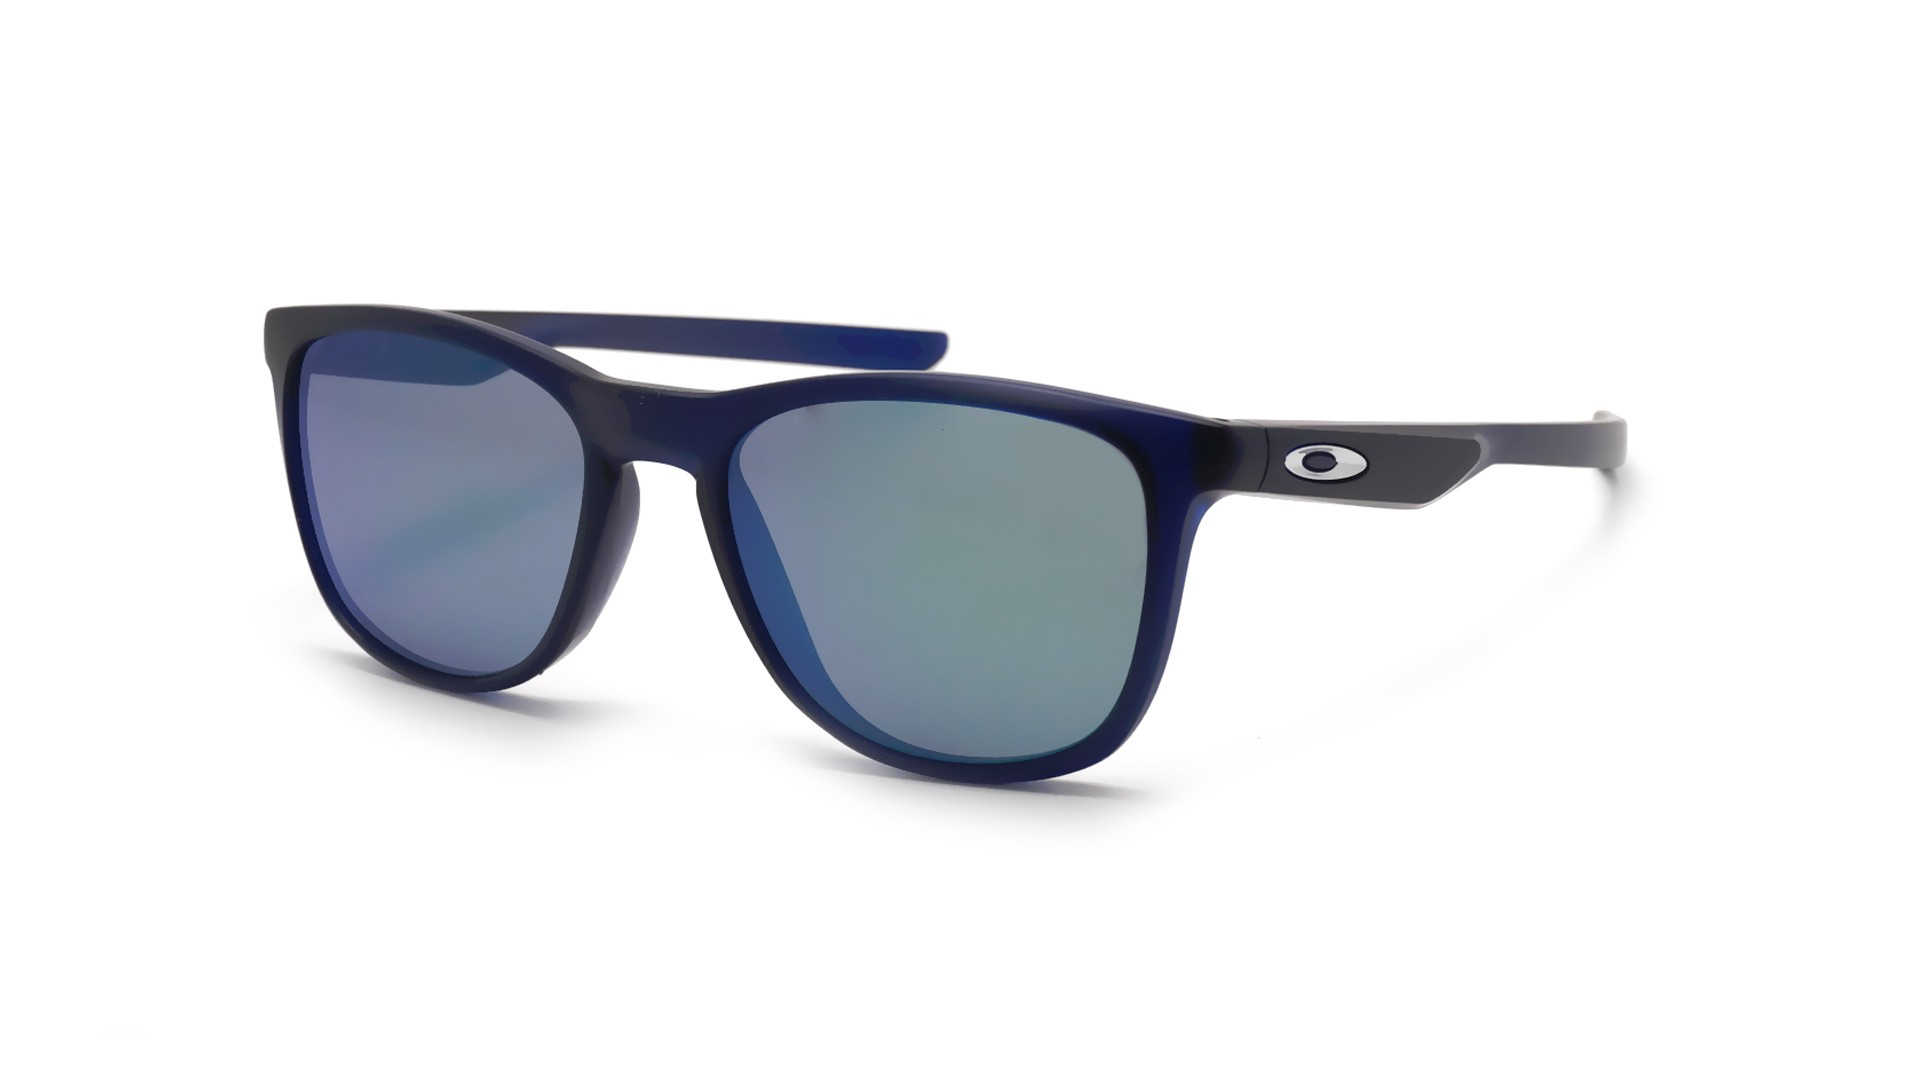 b78bf41001 Sunglasses Oakley Trillbe X Blue Mat OO9340 04 52-18 Medium Flash